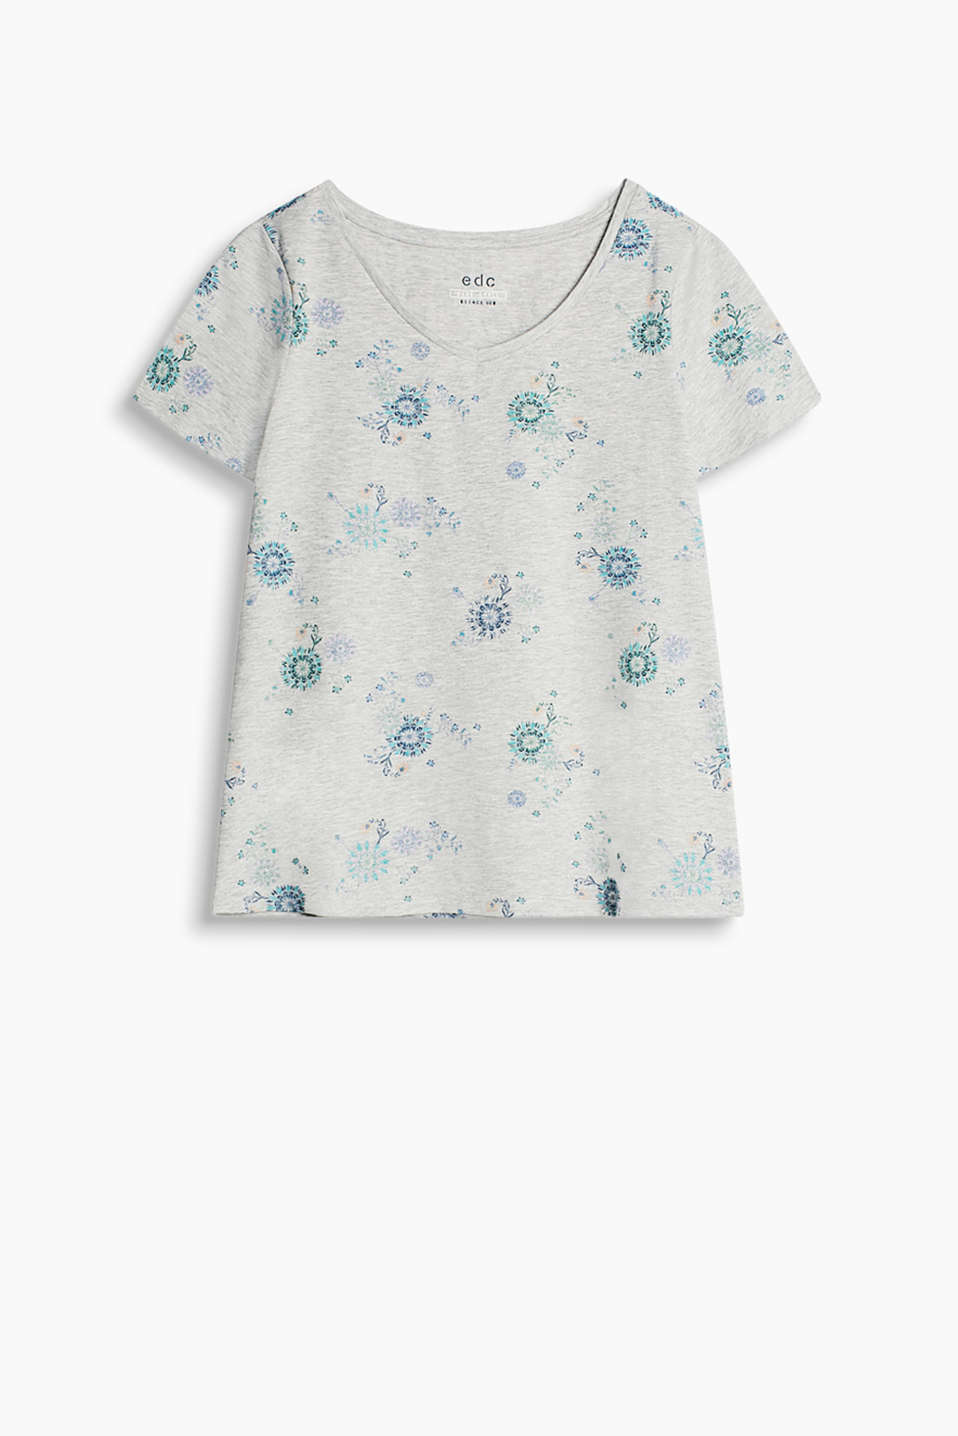 Loose, body-skimming T-shirt with a V-neckline and a floral all-over print